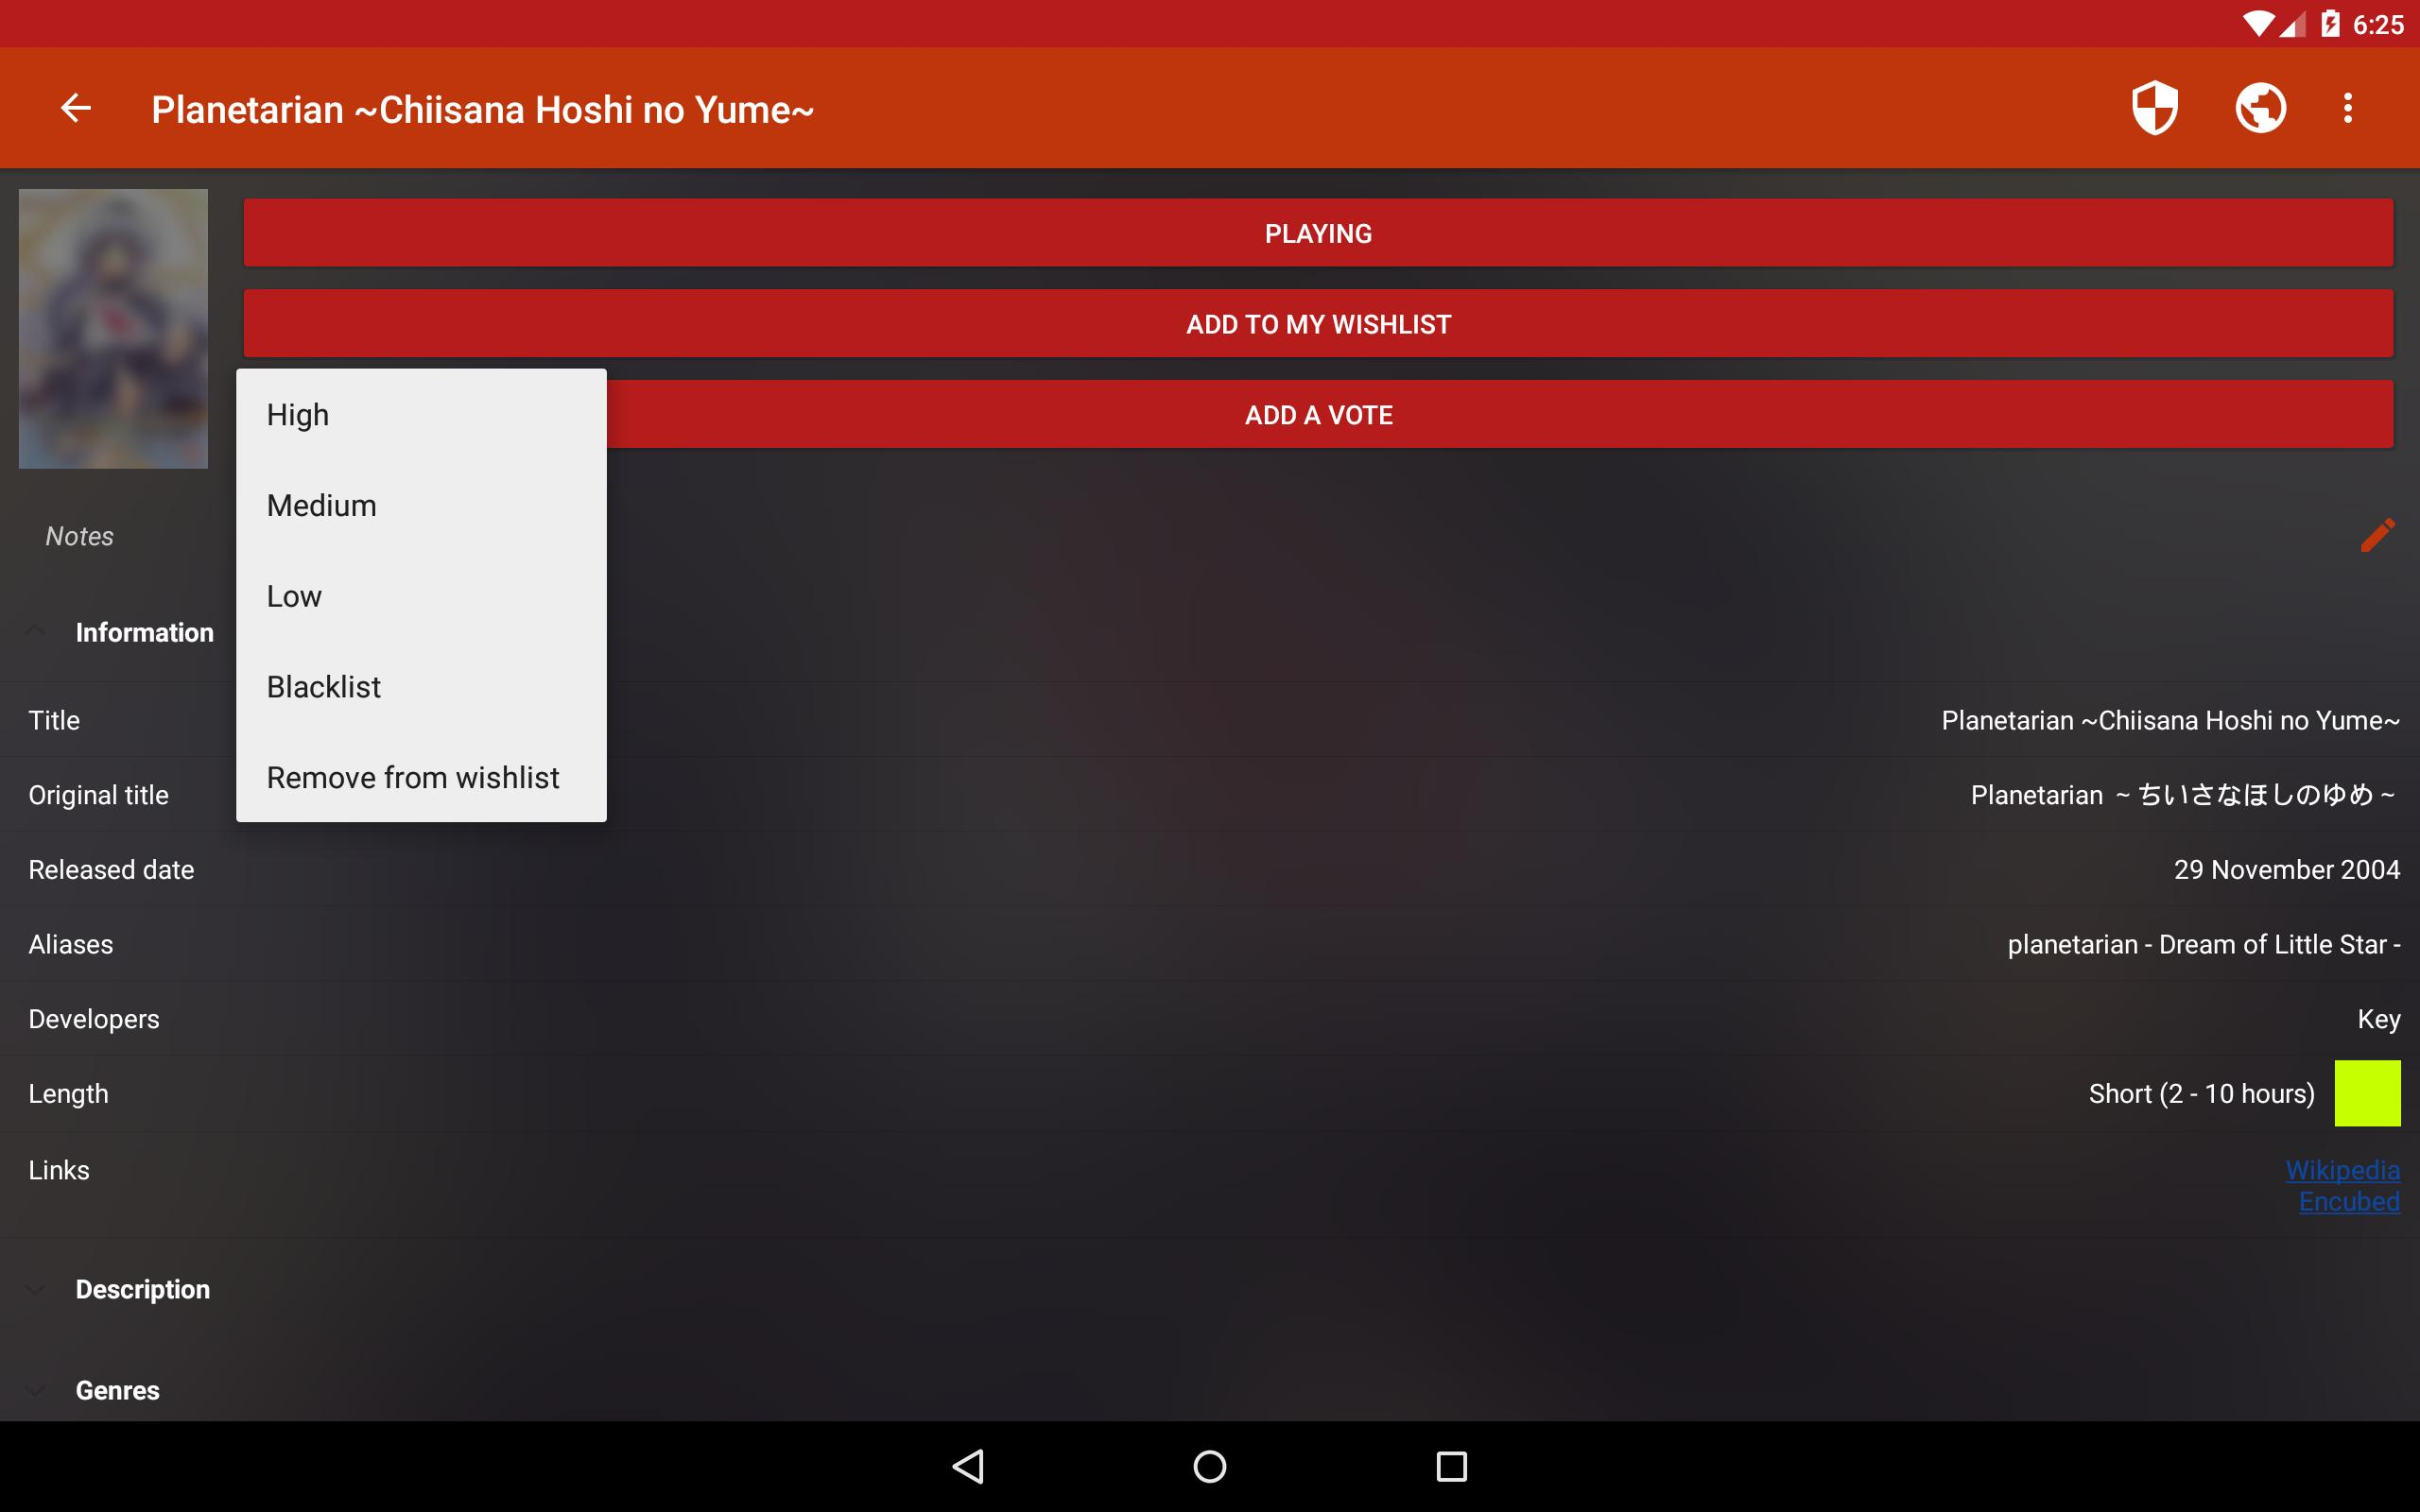 VNDB Android for Android - APK Download